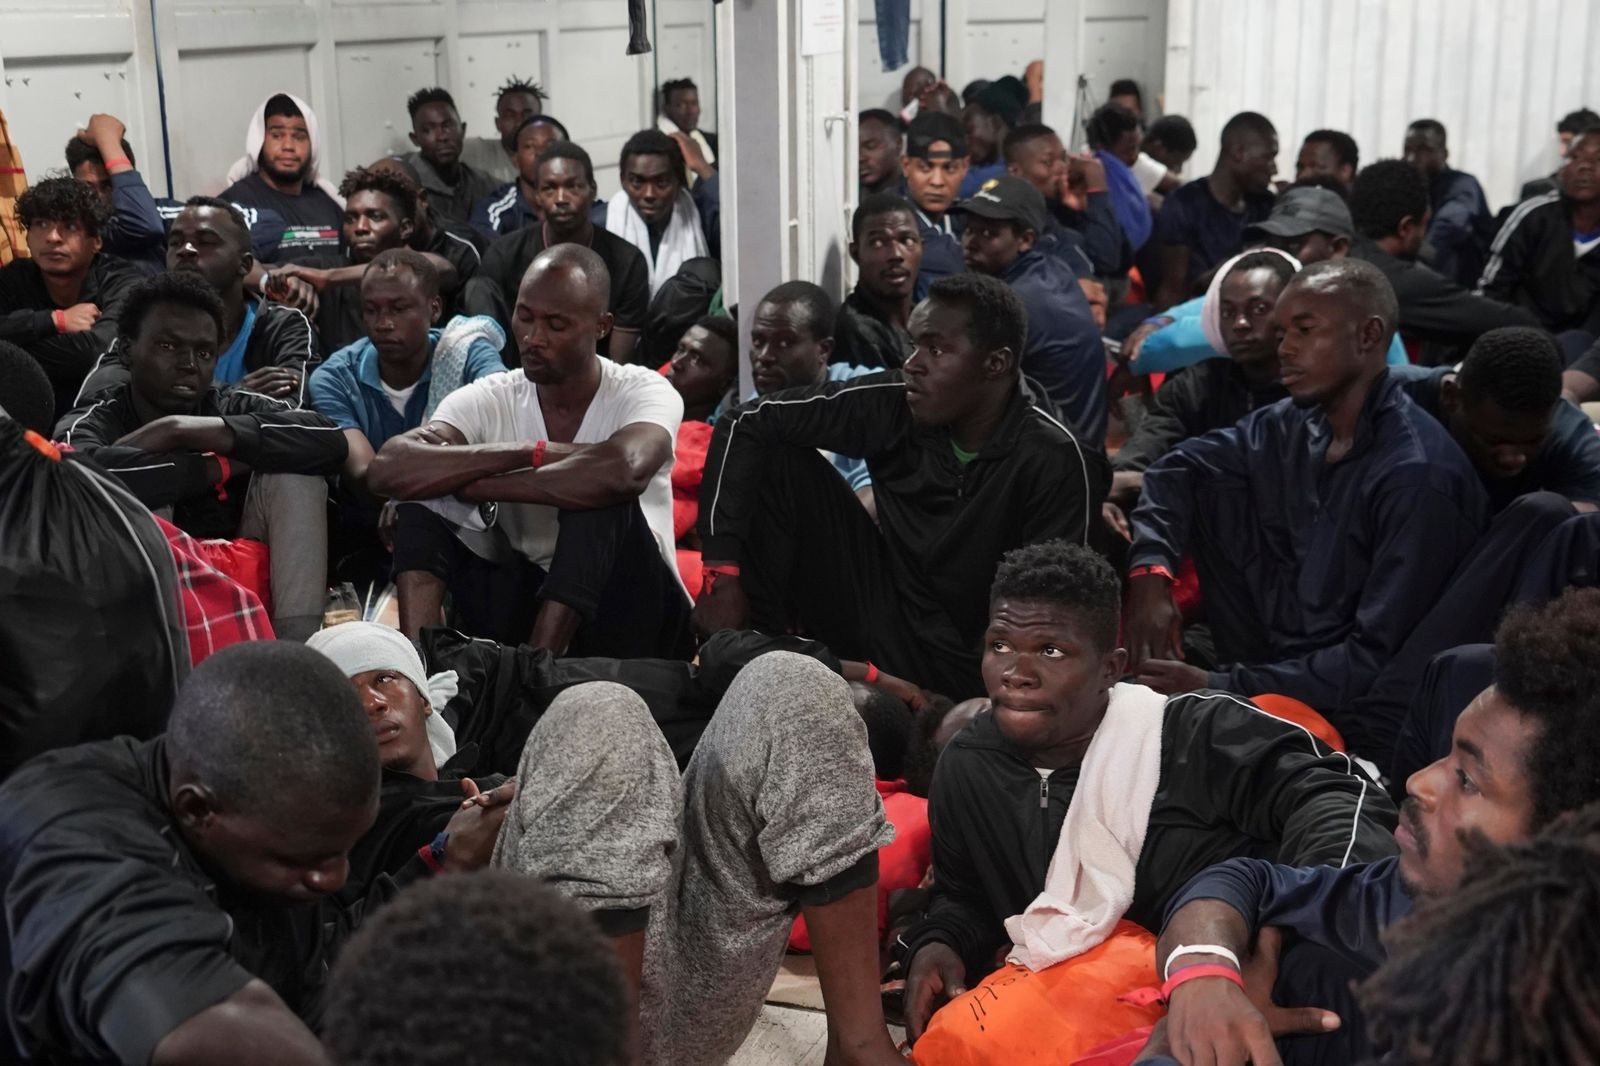 Men gather during a question and answer session with representatives of SOS Mediterranee and Doctors Without Borders in the men's shelter aboard the Ocean Viking in the Mediterranean Sea, Sunday, Sept. 22, 2019. The humanitarian ship carrying 182 people in international waters is sailing back and forth between Italy and Malta as it waits for European governments to allow it in. (AP Photo/Renata Brito)